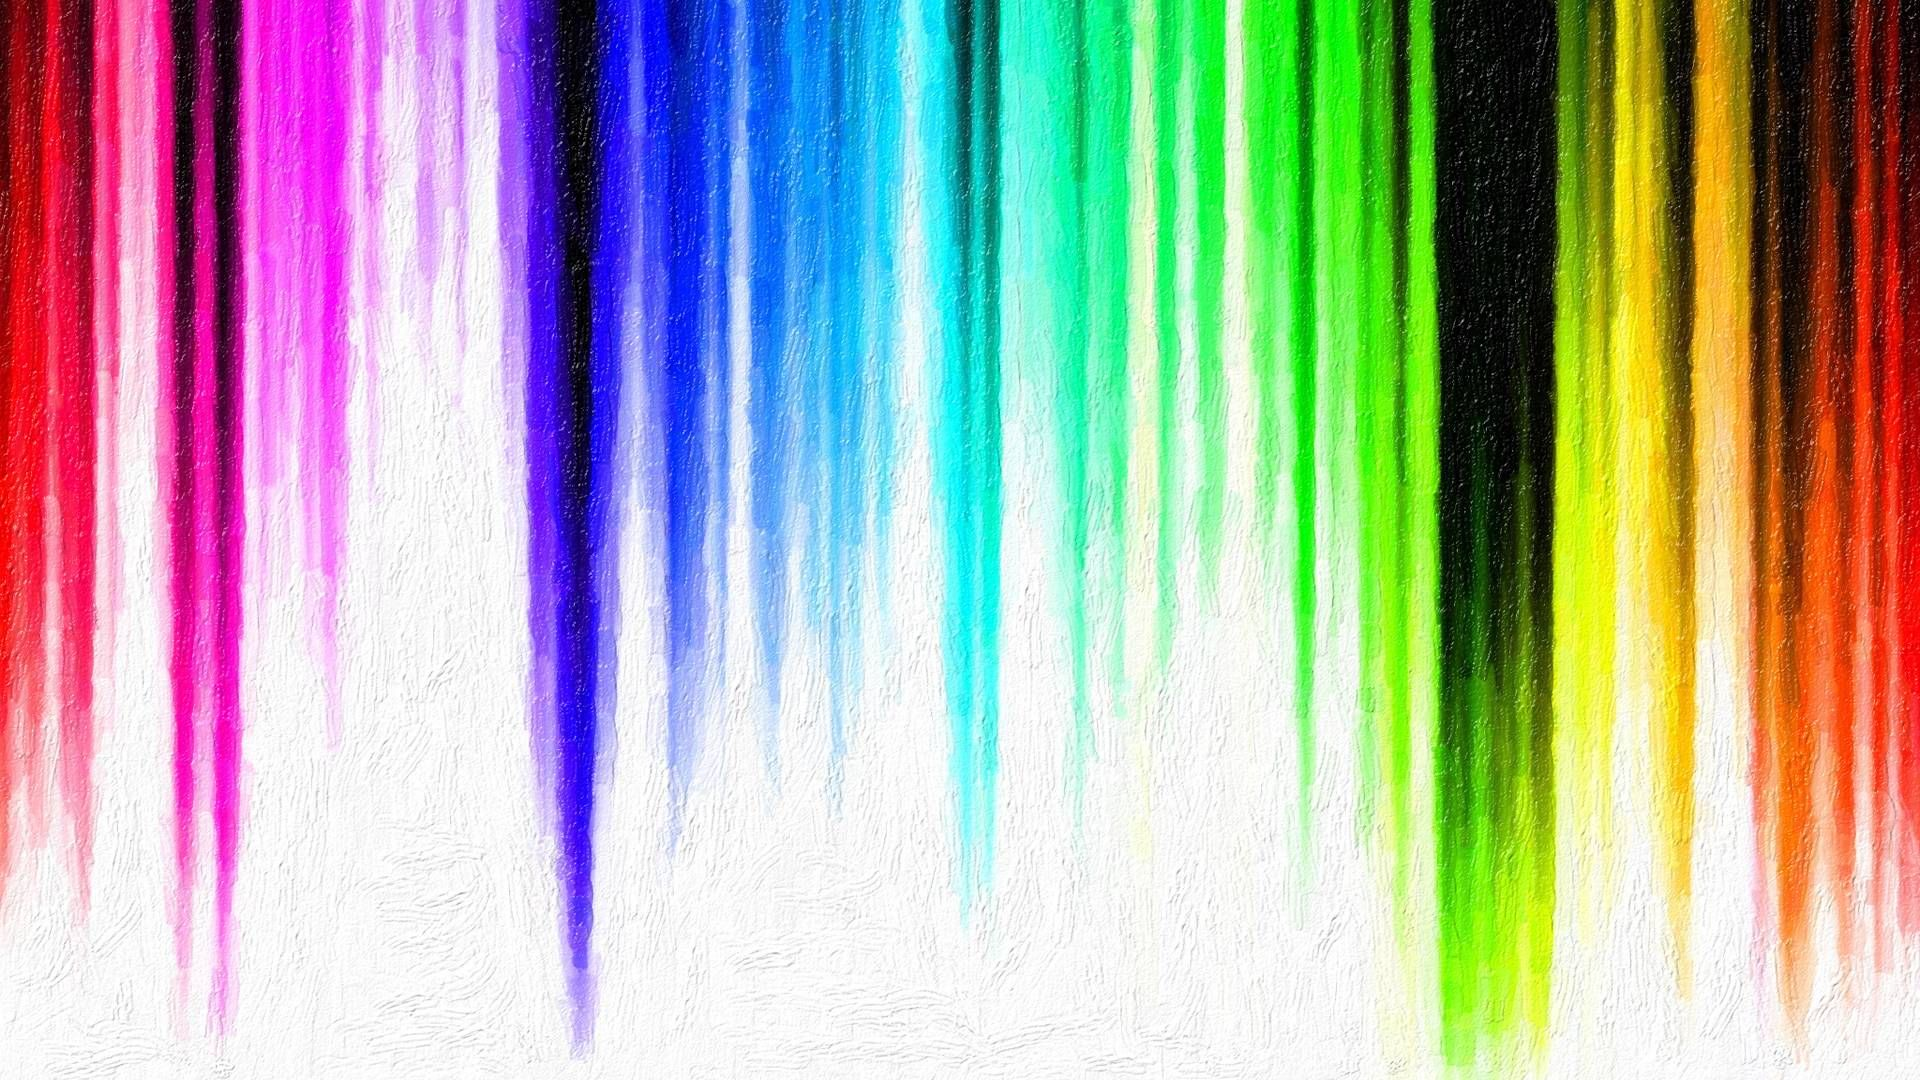 rainbow screensavers and backgrounds free - Rainbow Color